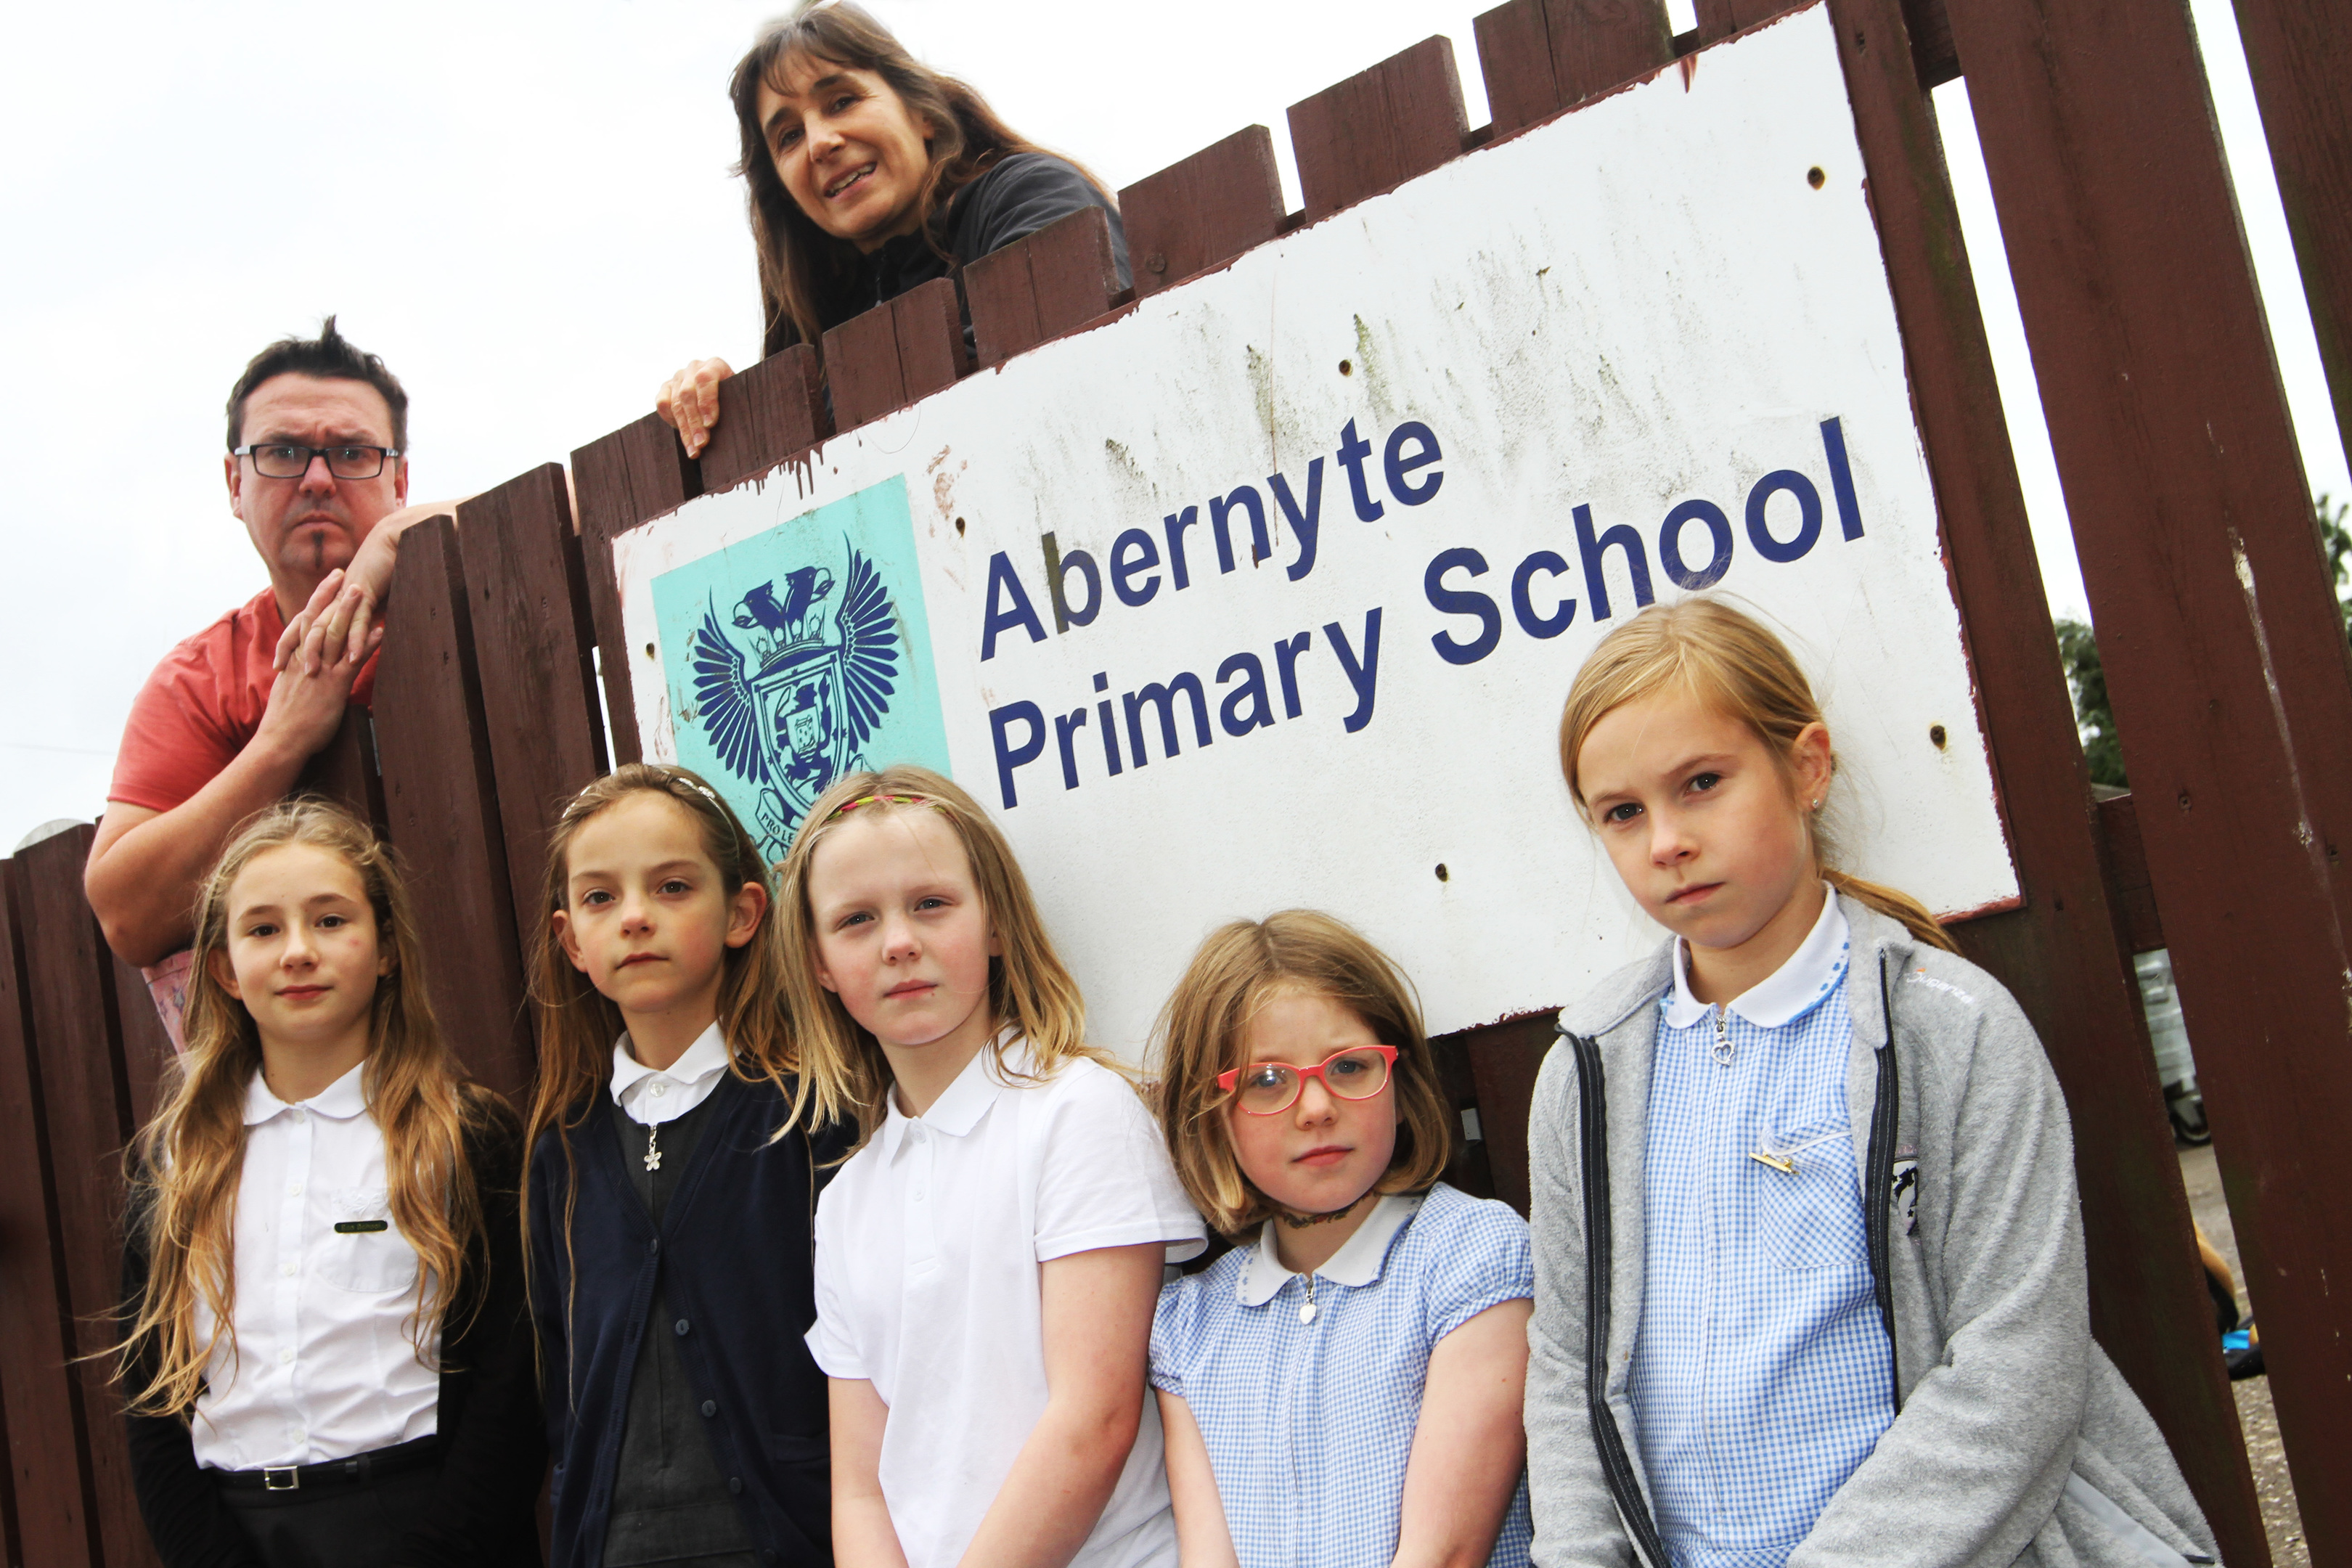 Abernyte Primary School is one of the schools that could close under the council's estates review. Parents think it has been deliberately undermined by the council.  Picture shows; Chairman and Treasurer of the Parents Council Gerard McGoldrick and Claudia Lacoux with front l to r, Elle Lacoux, 10, Lucy MacGregor, 8, Anna McGoldrick, 9, Bea Meldrum, 9, Maya King, 9.